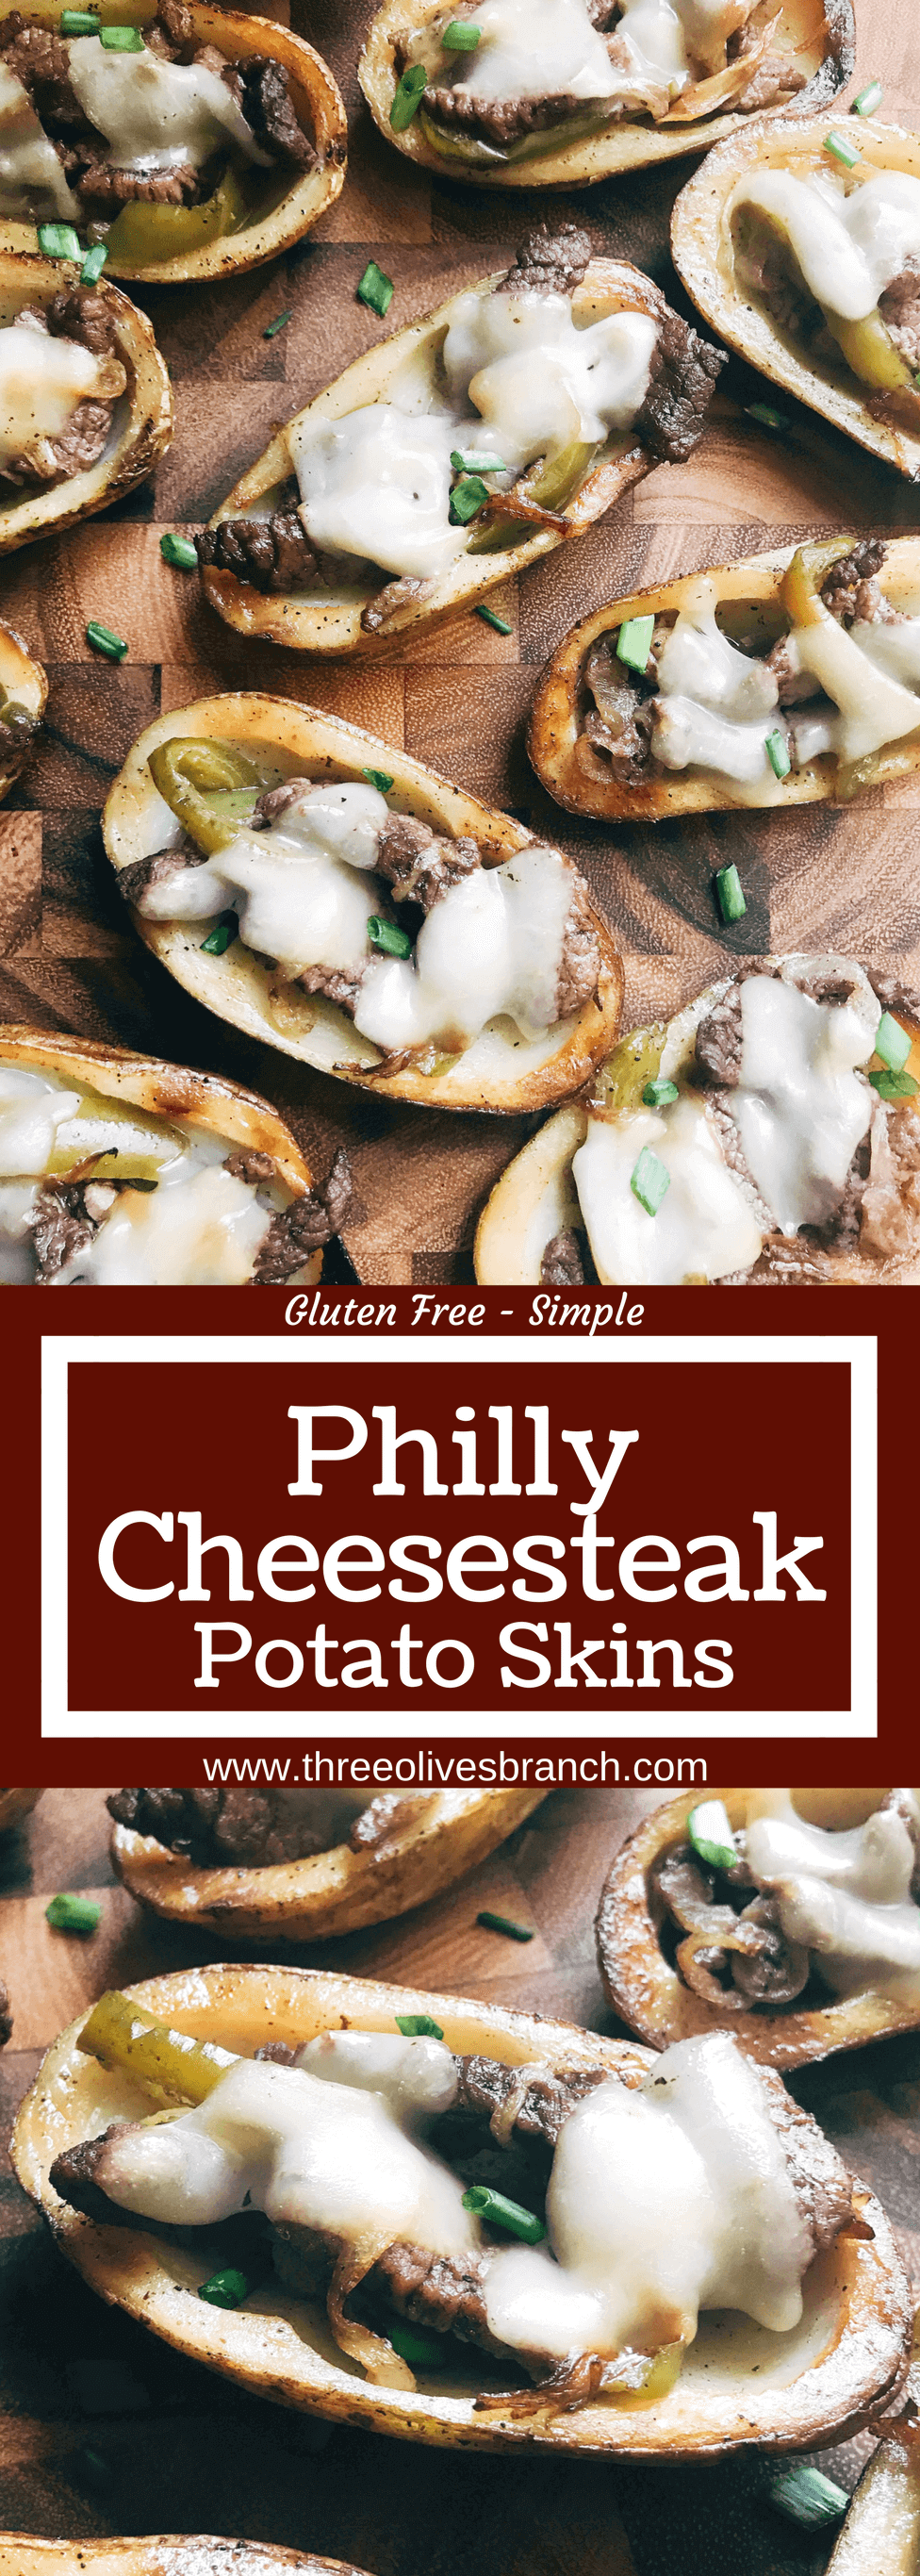 Game day appetizer full of classic Philly Cheese Steak flavors. Beef steak, bell peppers, onion, and provolone cheese in a potato skin shell. Great football food for NFL Sunday as a party snack. Gluten free. Philly Cheesesteak Potato Skins   Three Olives Branch   www.threeolivesbranch.com